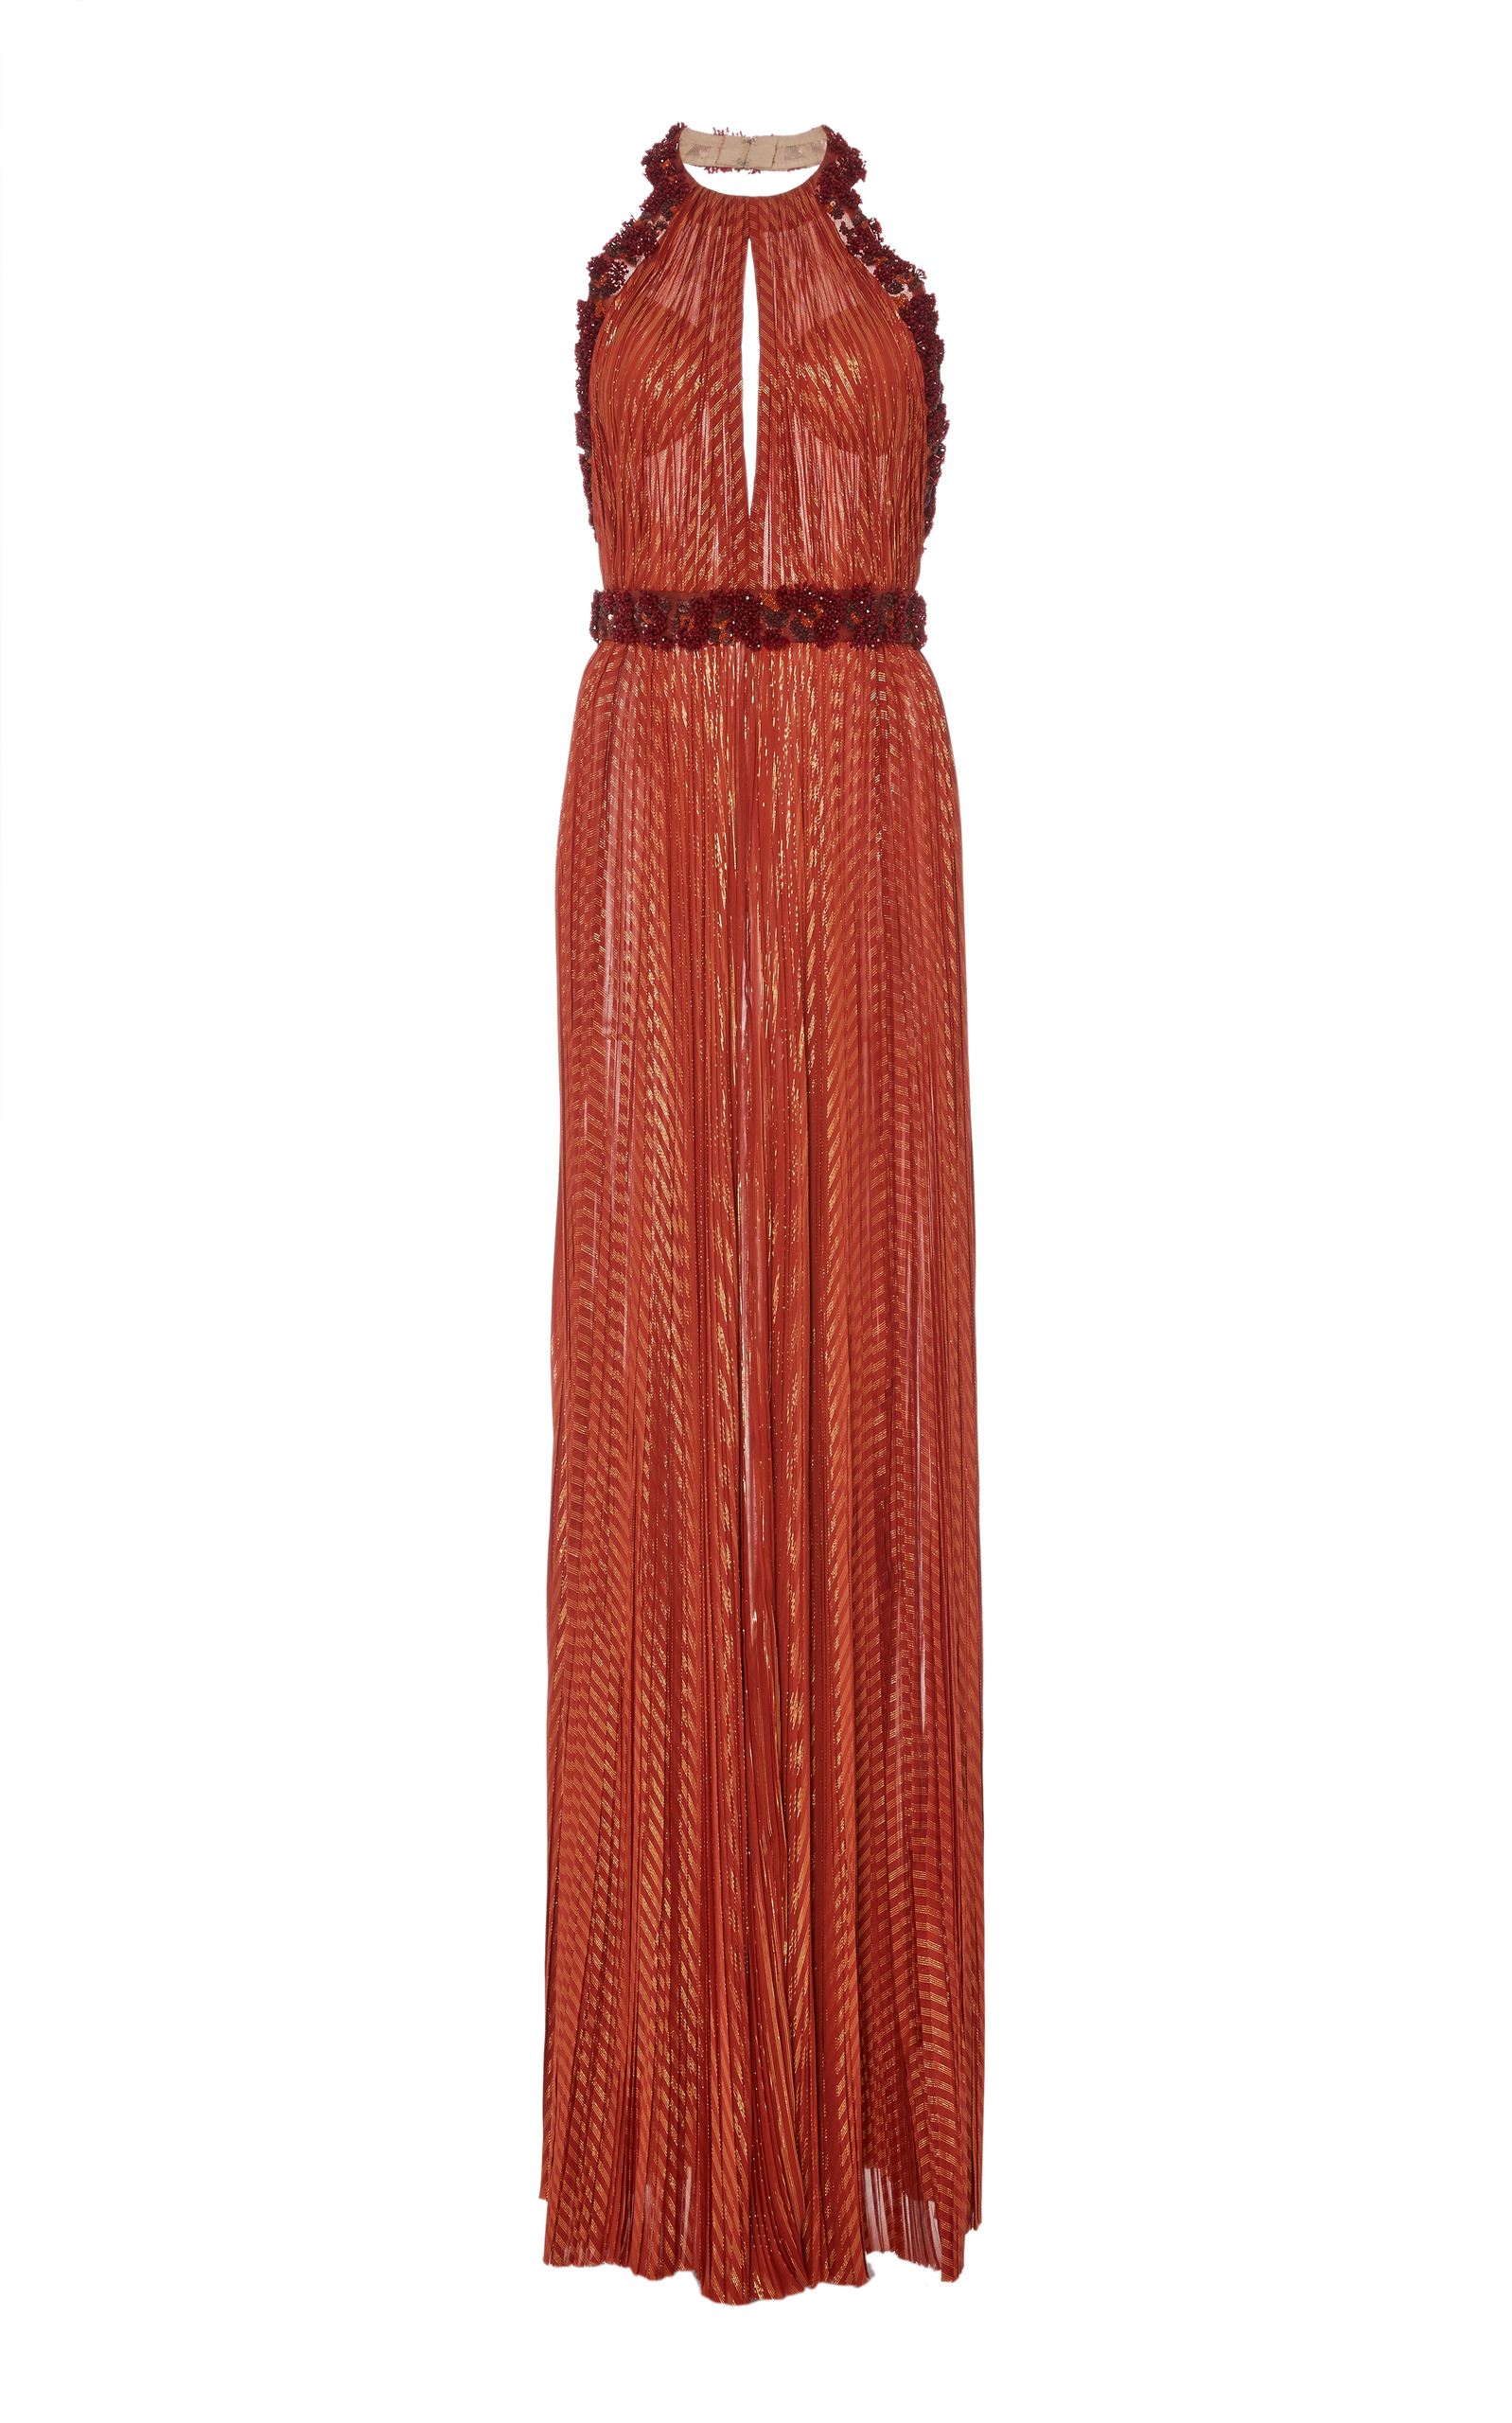 J MENDEL METALLIC BEADED HALTER COLUMN GOWN,